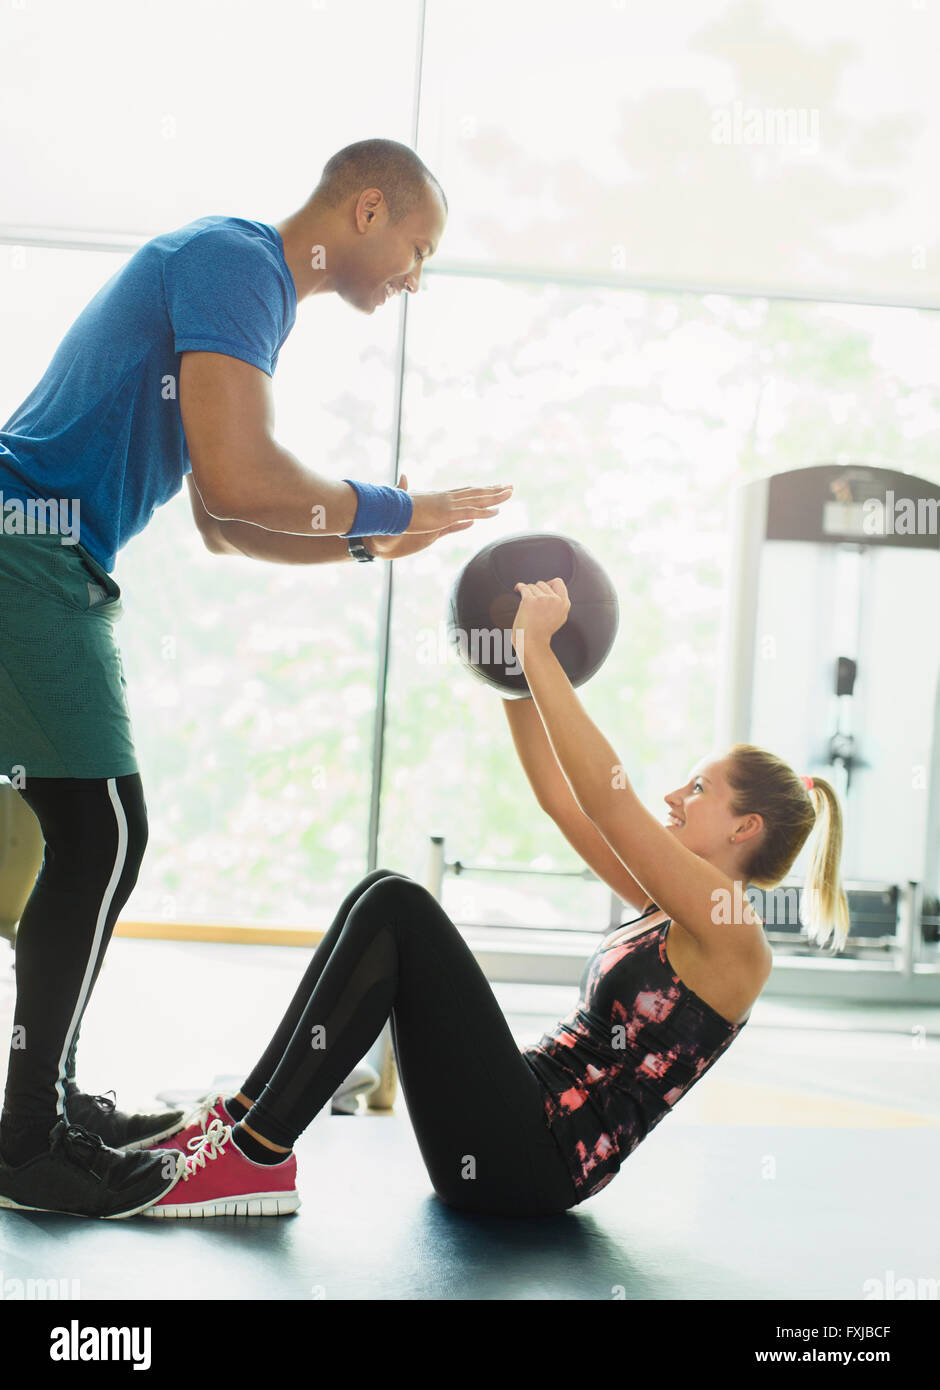 Personal trainer guiding woman with medicine ball at gym Stock Photo